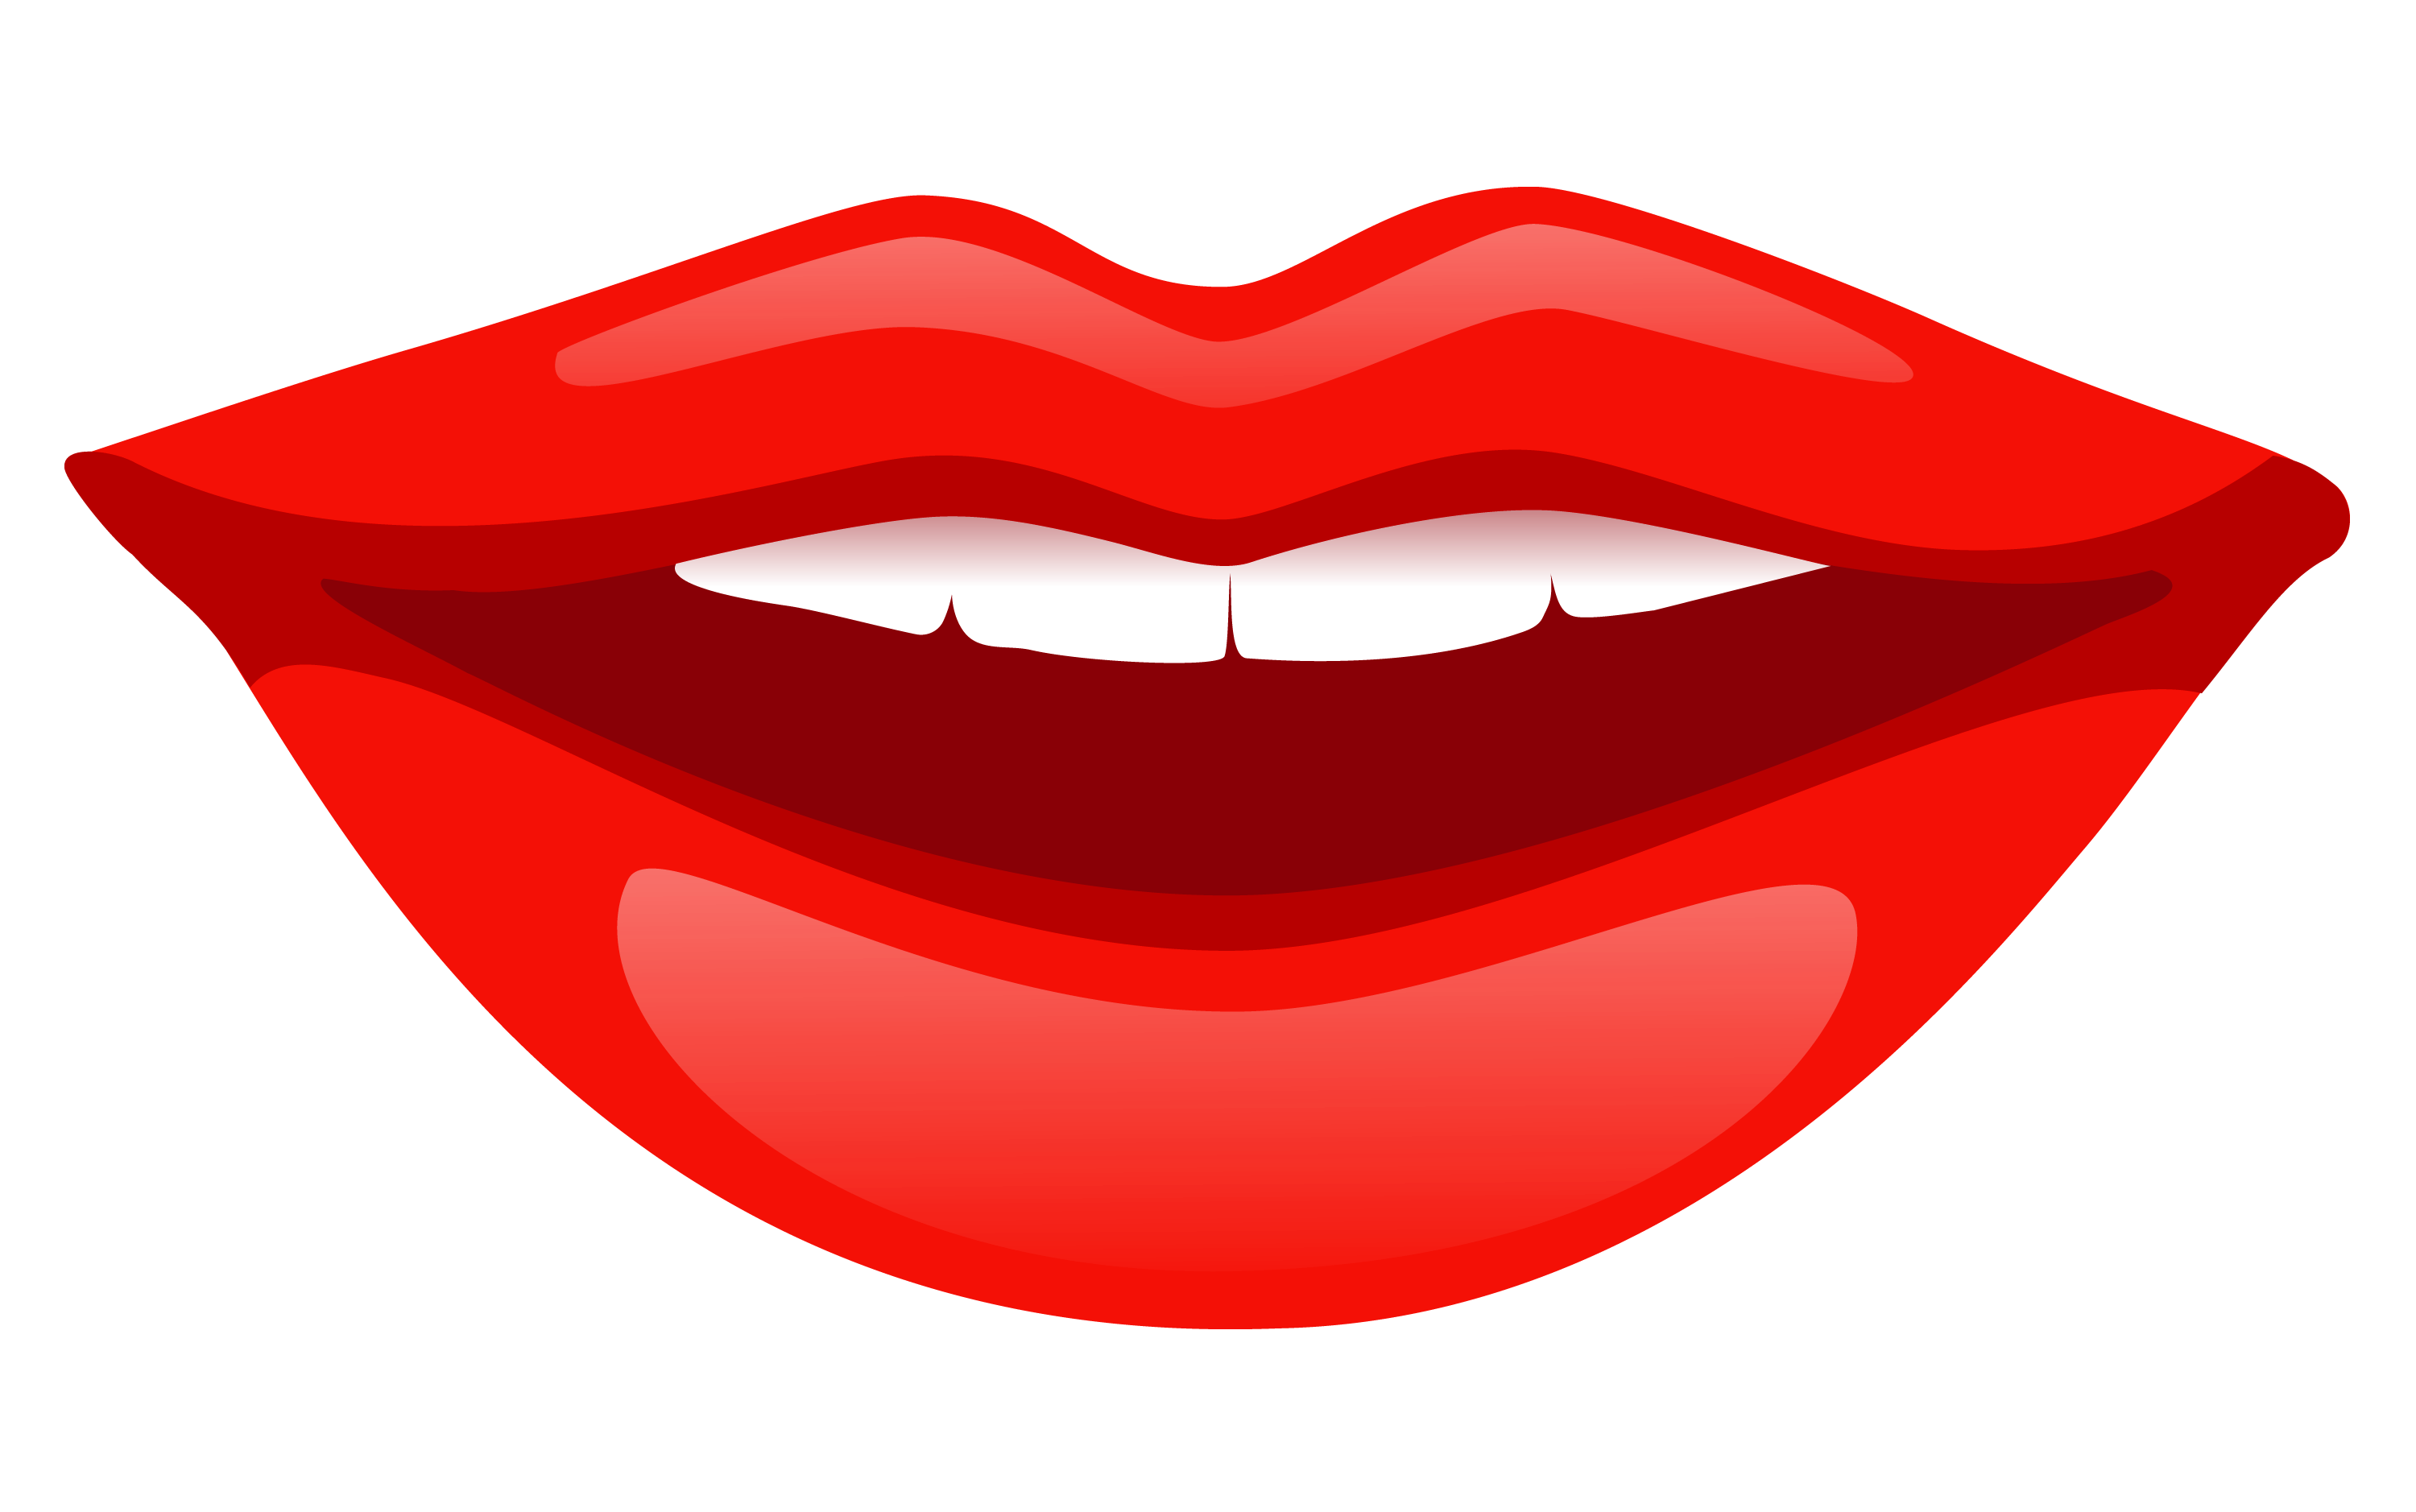 freeuse Lip clipart. Female transparent free for.